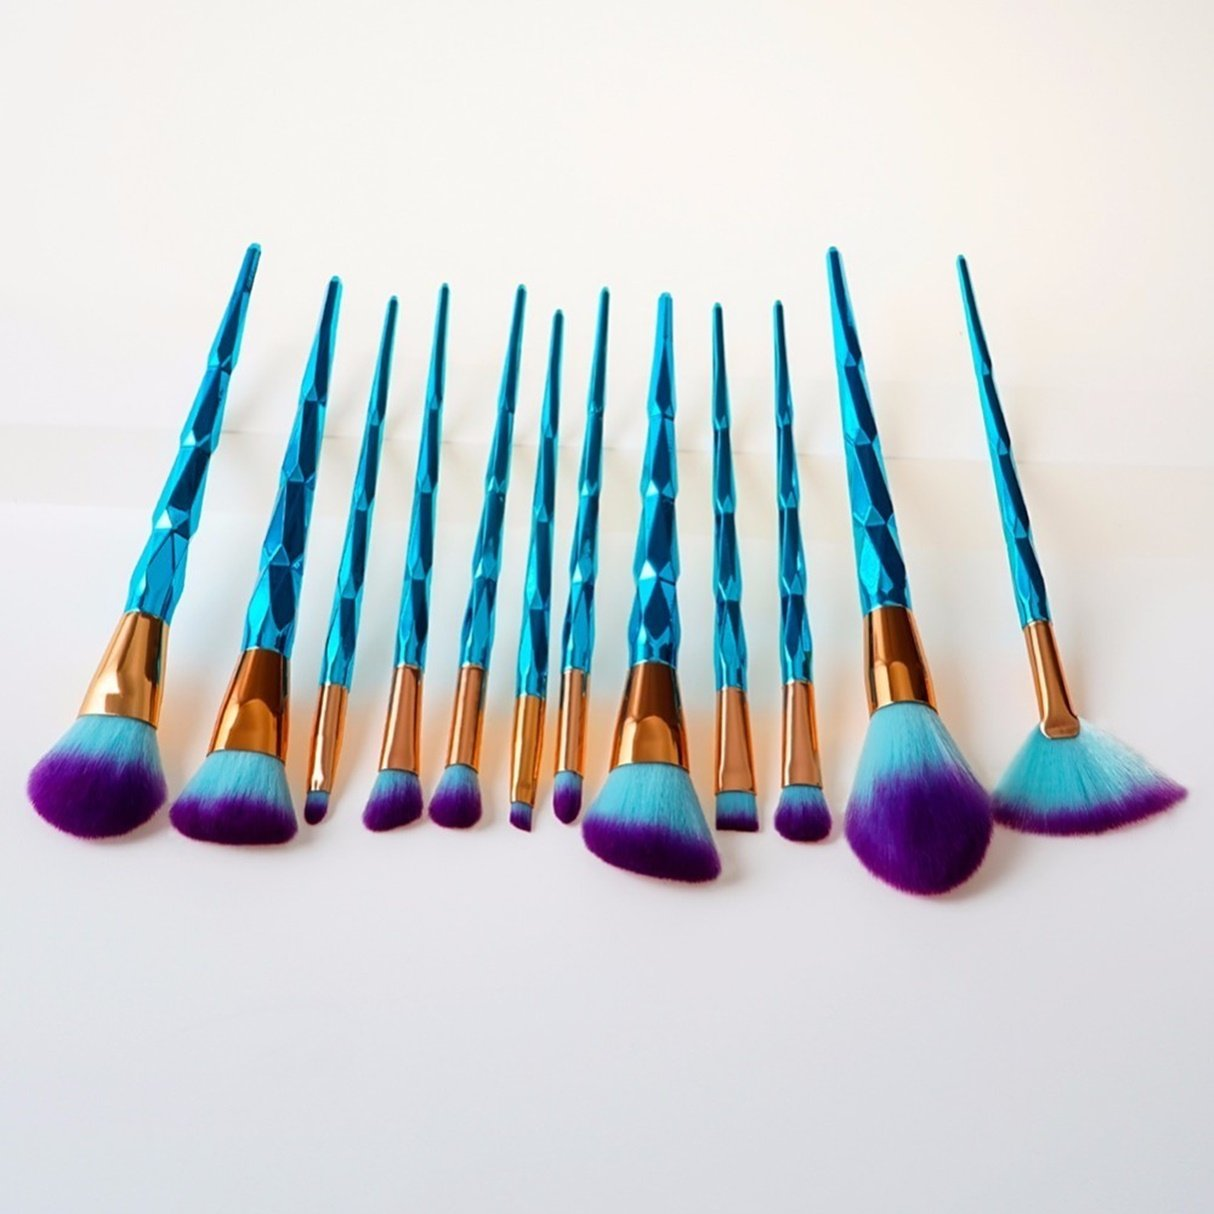 12 Piece Unicorn Diamond Rainbow Makeup Brushes Set Make Up Tools Foundation Natural Beauty Palette Eyeshadow Vanity Deluxe Popular Eyes Faced Colorful Hair Highlights Glitter Kids Travel Kit, Type-03